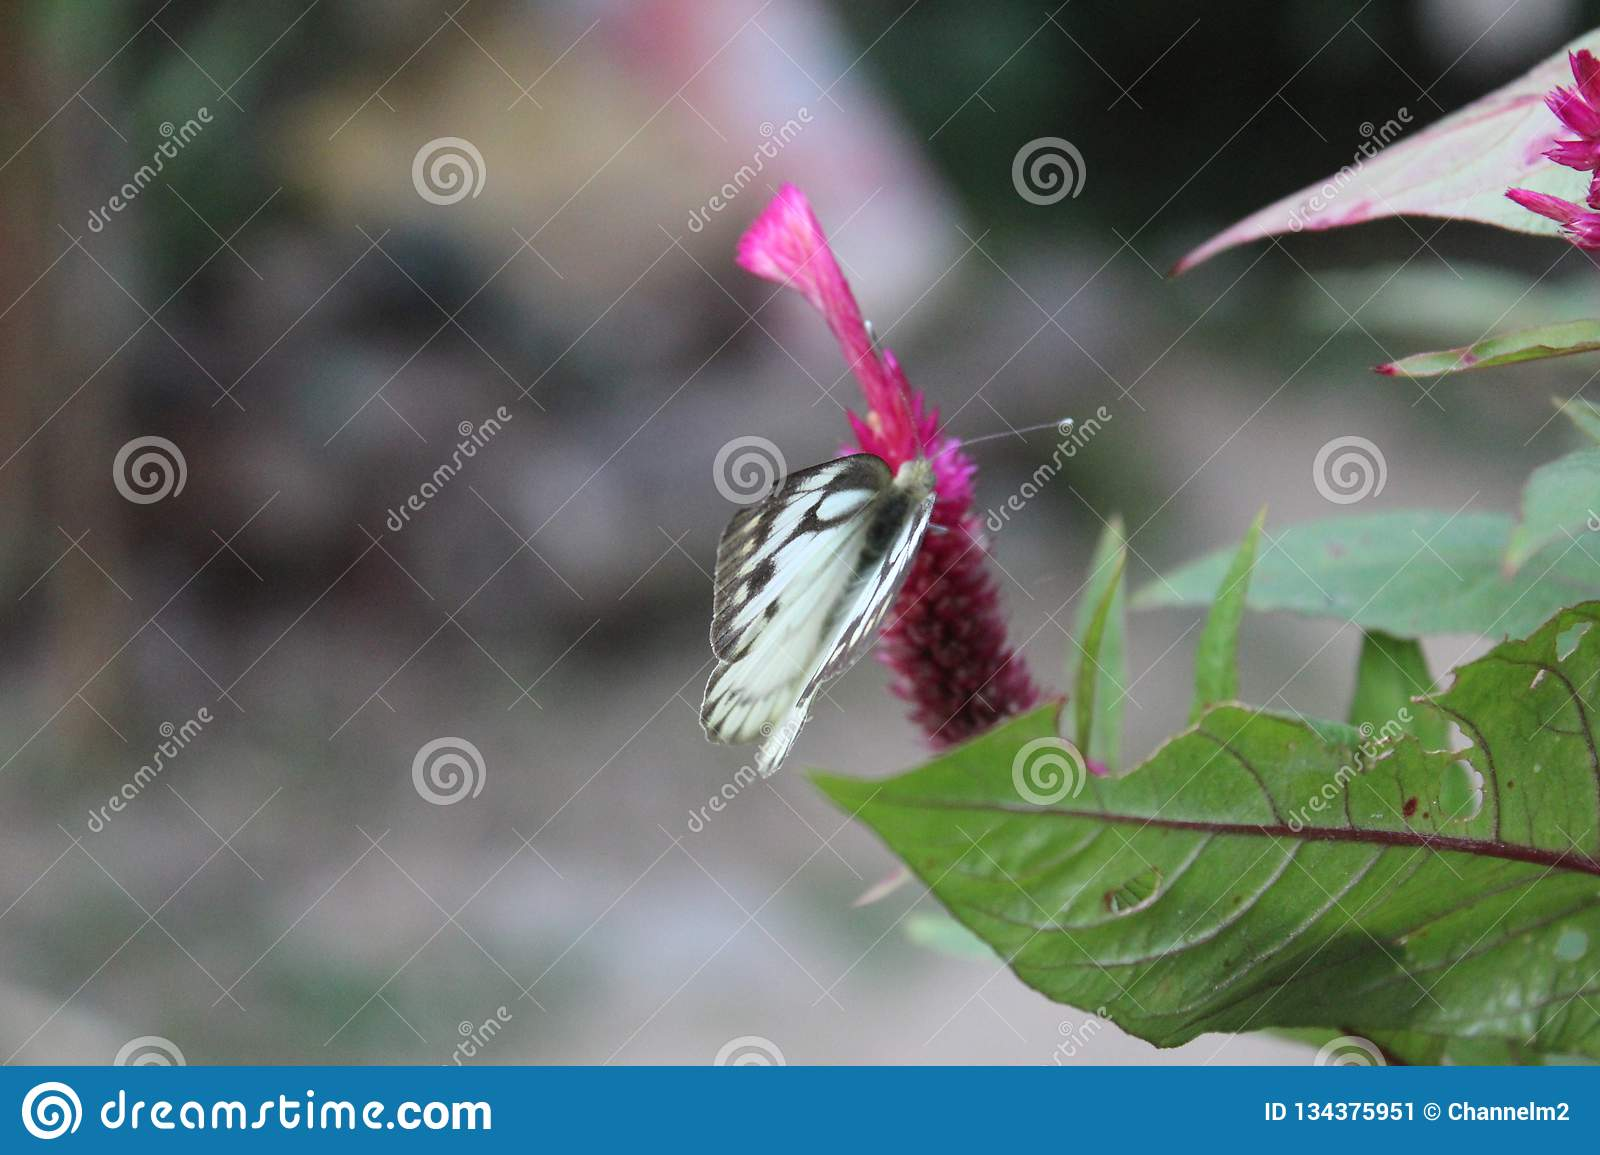 Close-up image of a stripped Pioneer White or Indian Caper White butterfly resting on pink flower